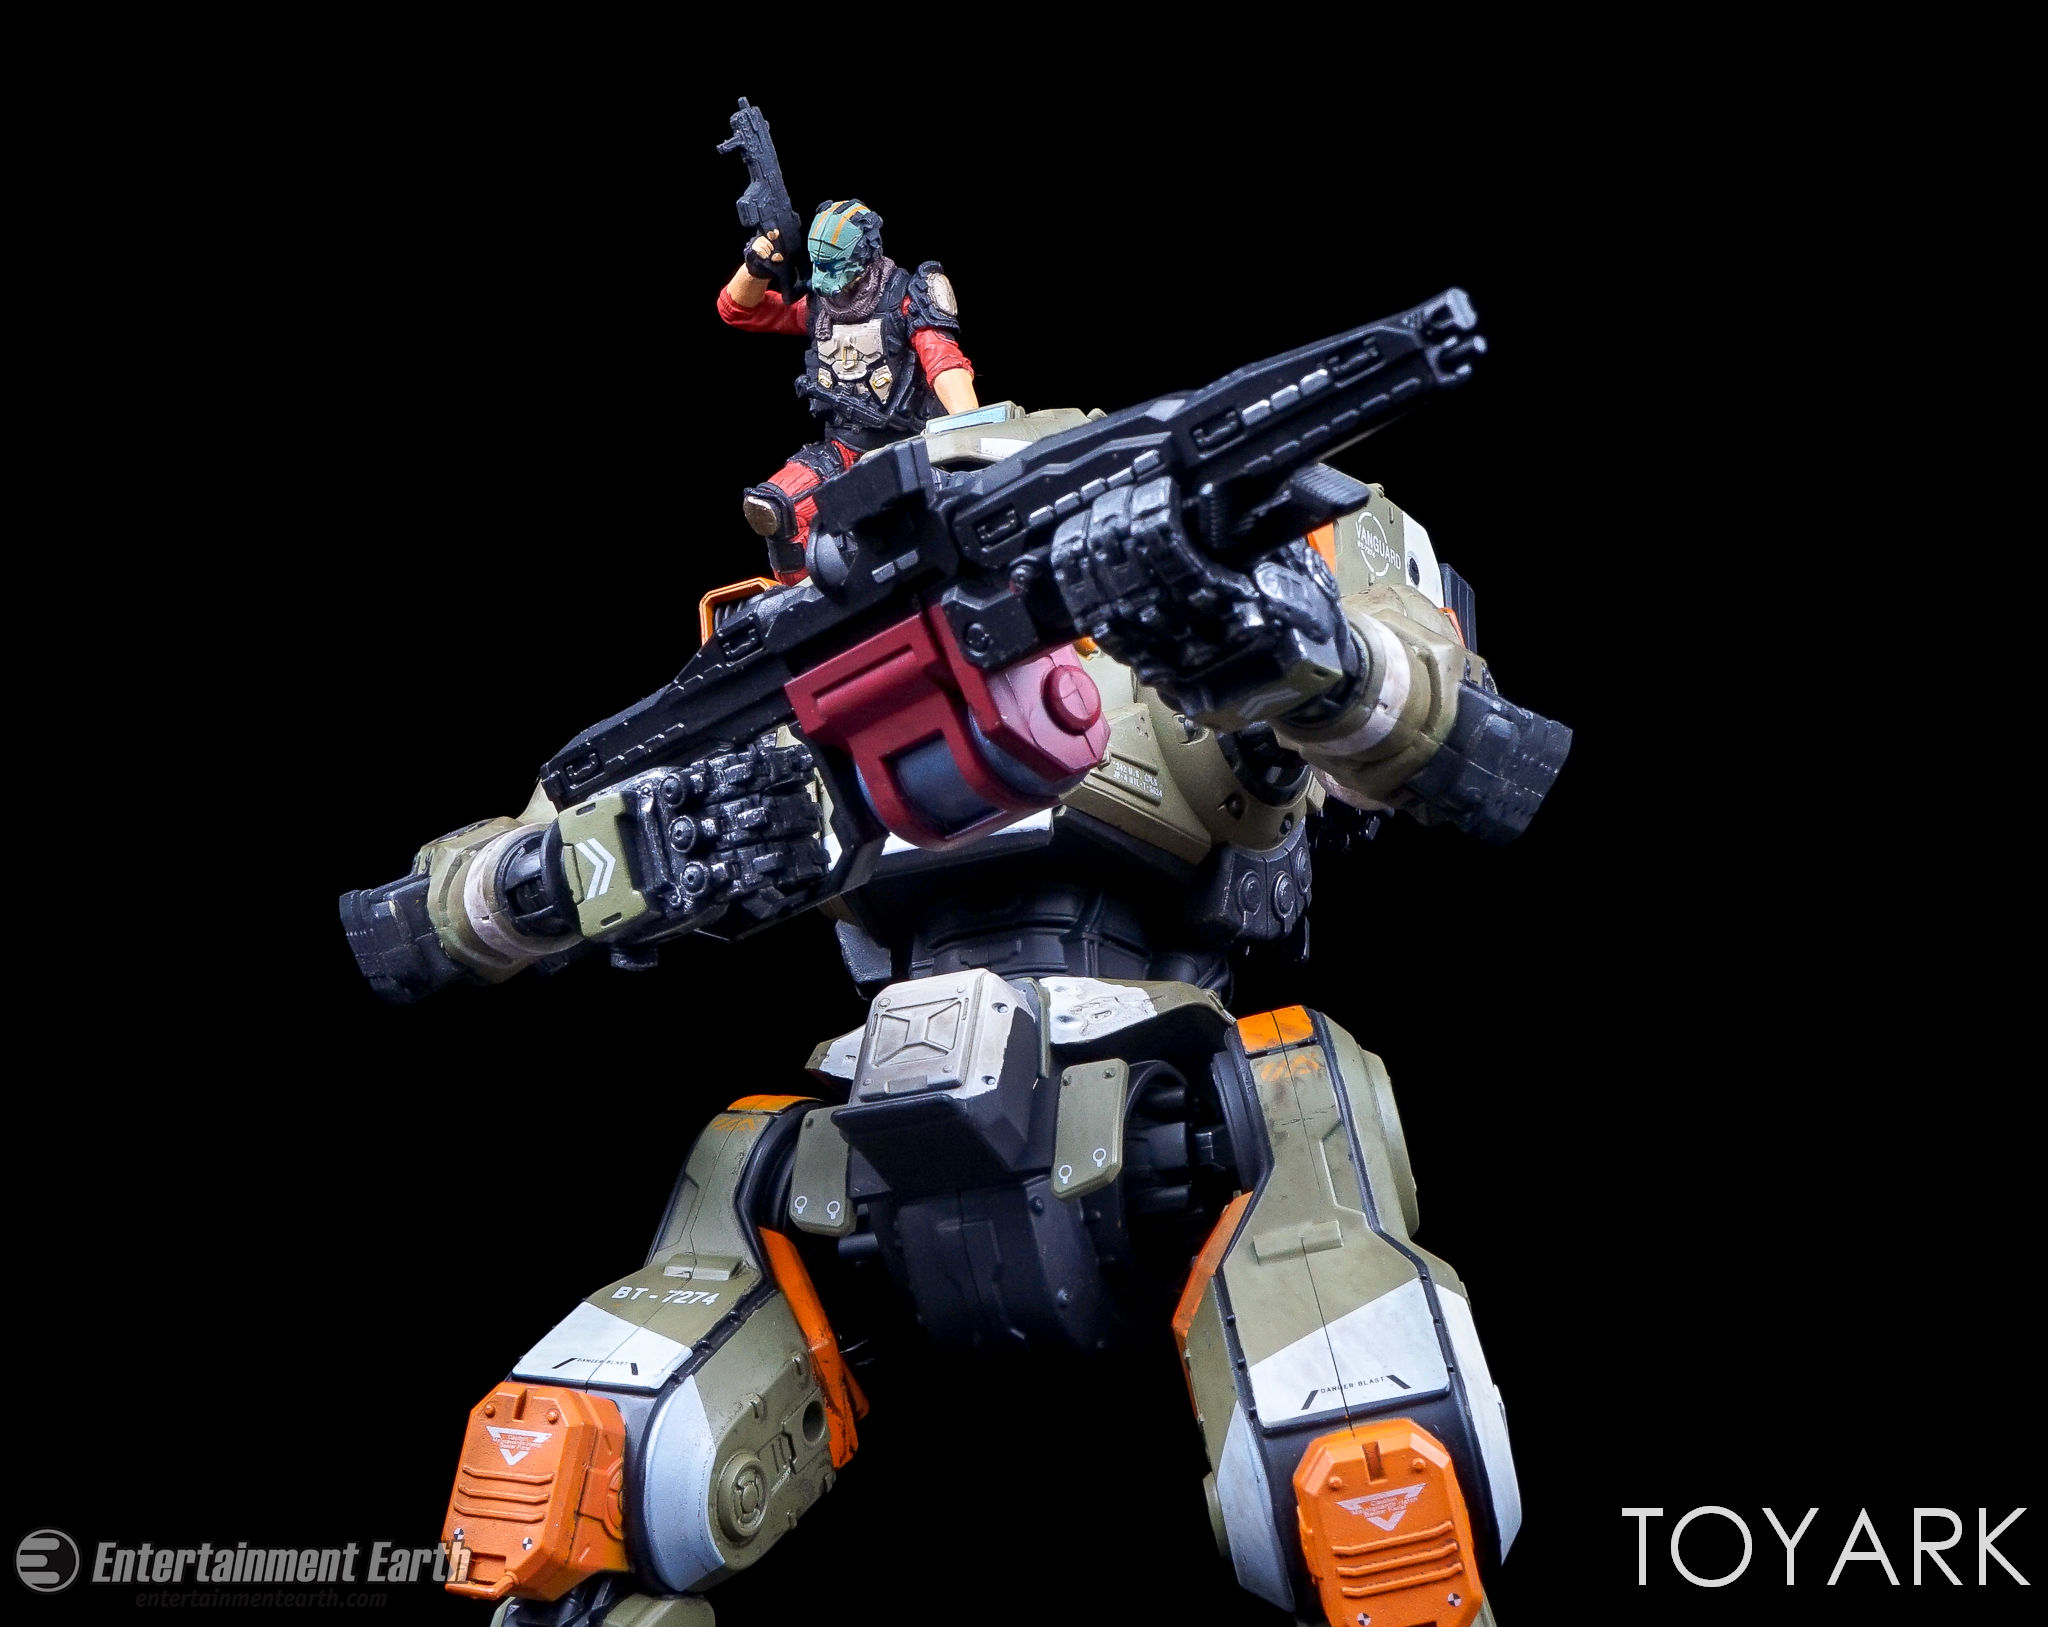 http://news.toyark.com/wp-content/uploads/sites/4/2017/04/McFarlane-BT-7274-Titanfall-2-Figure-020.jpg